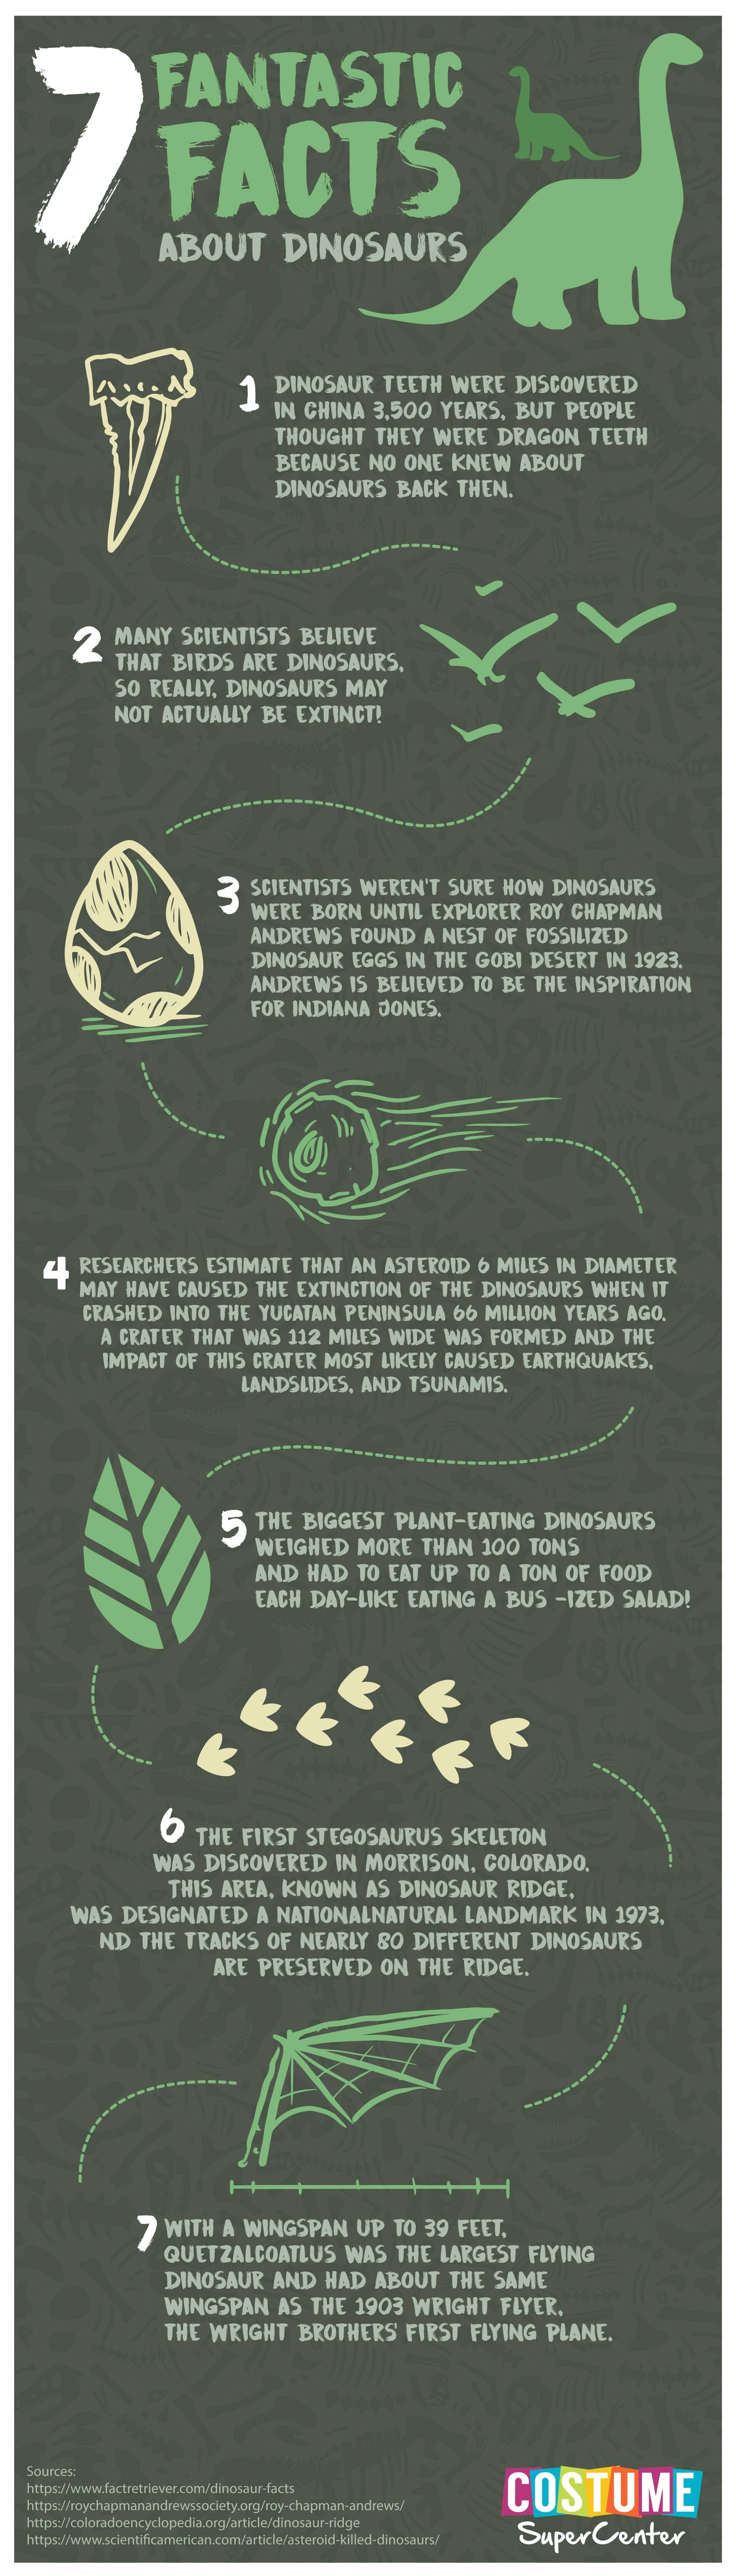 7 Fantastic Facts About Dinosaurs #infographic